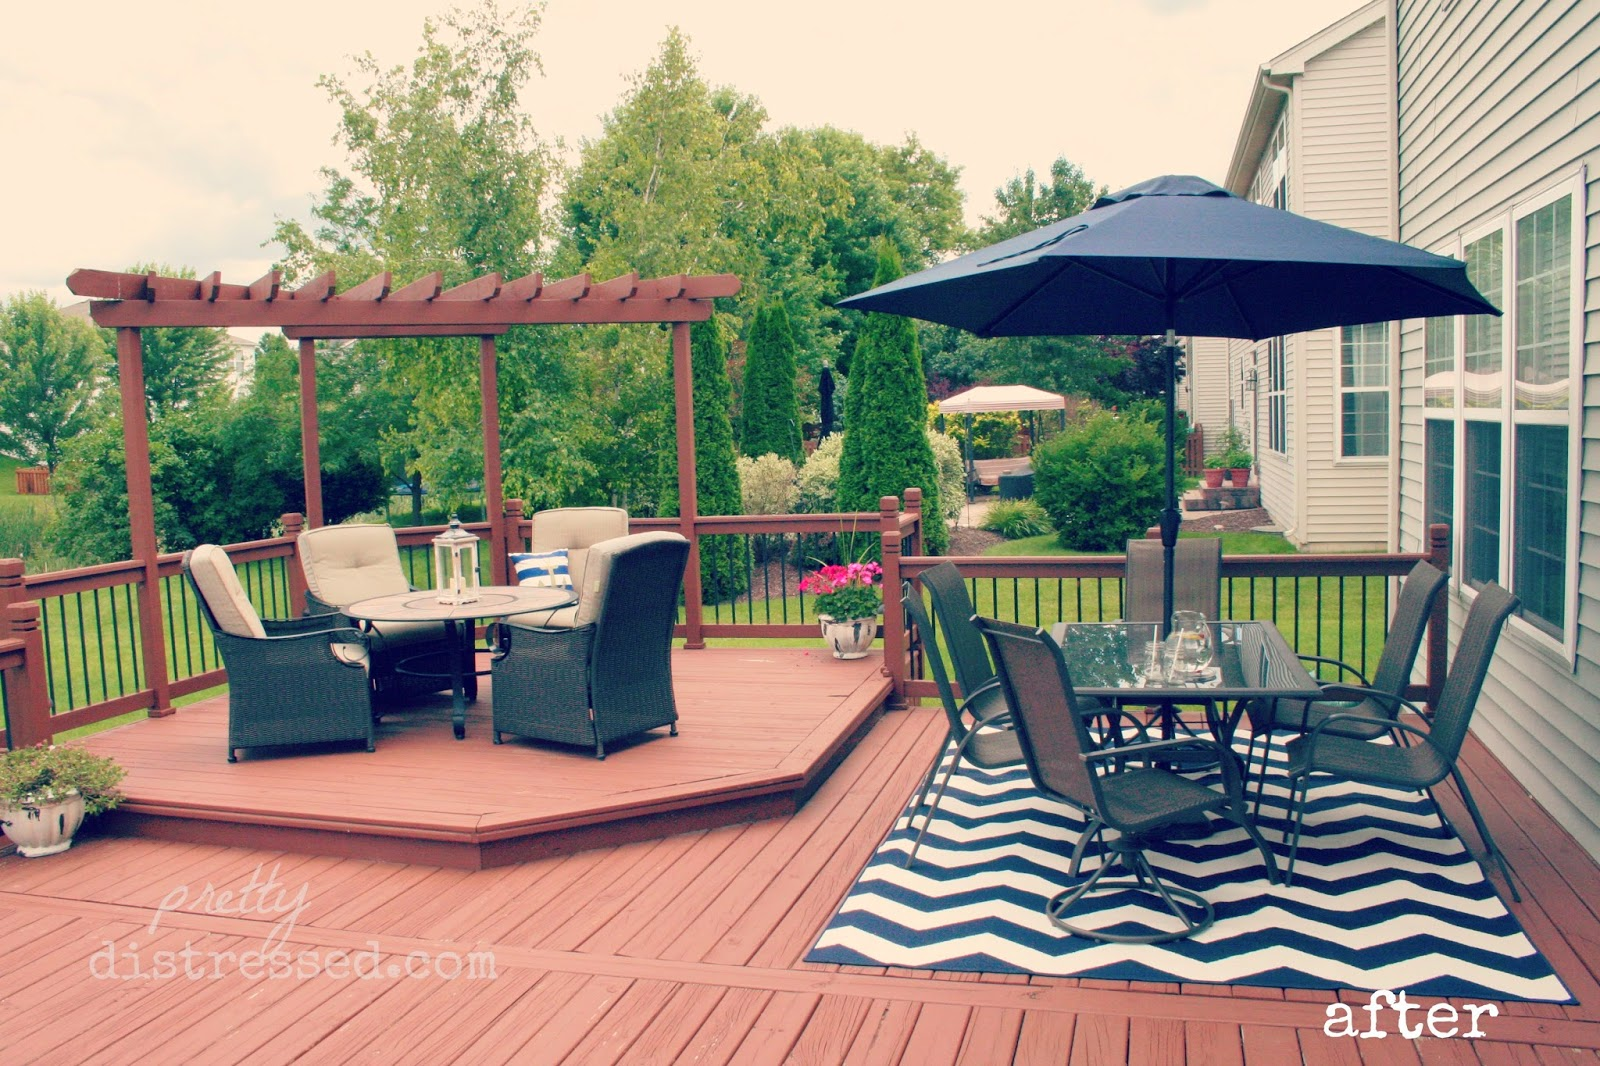 Best It us Not Too Late to Update that Outdoor Space and DIY Nautical Pillow